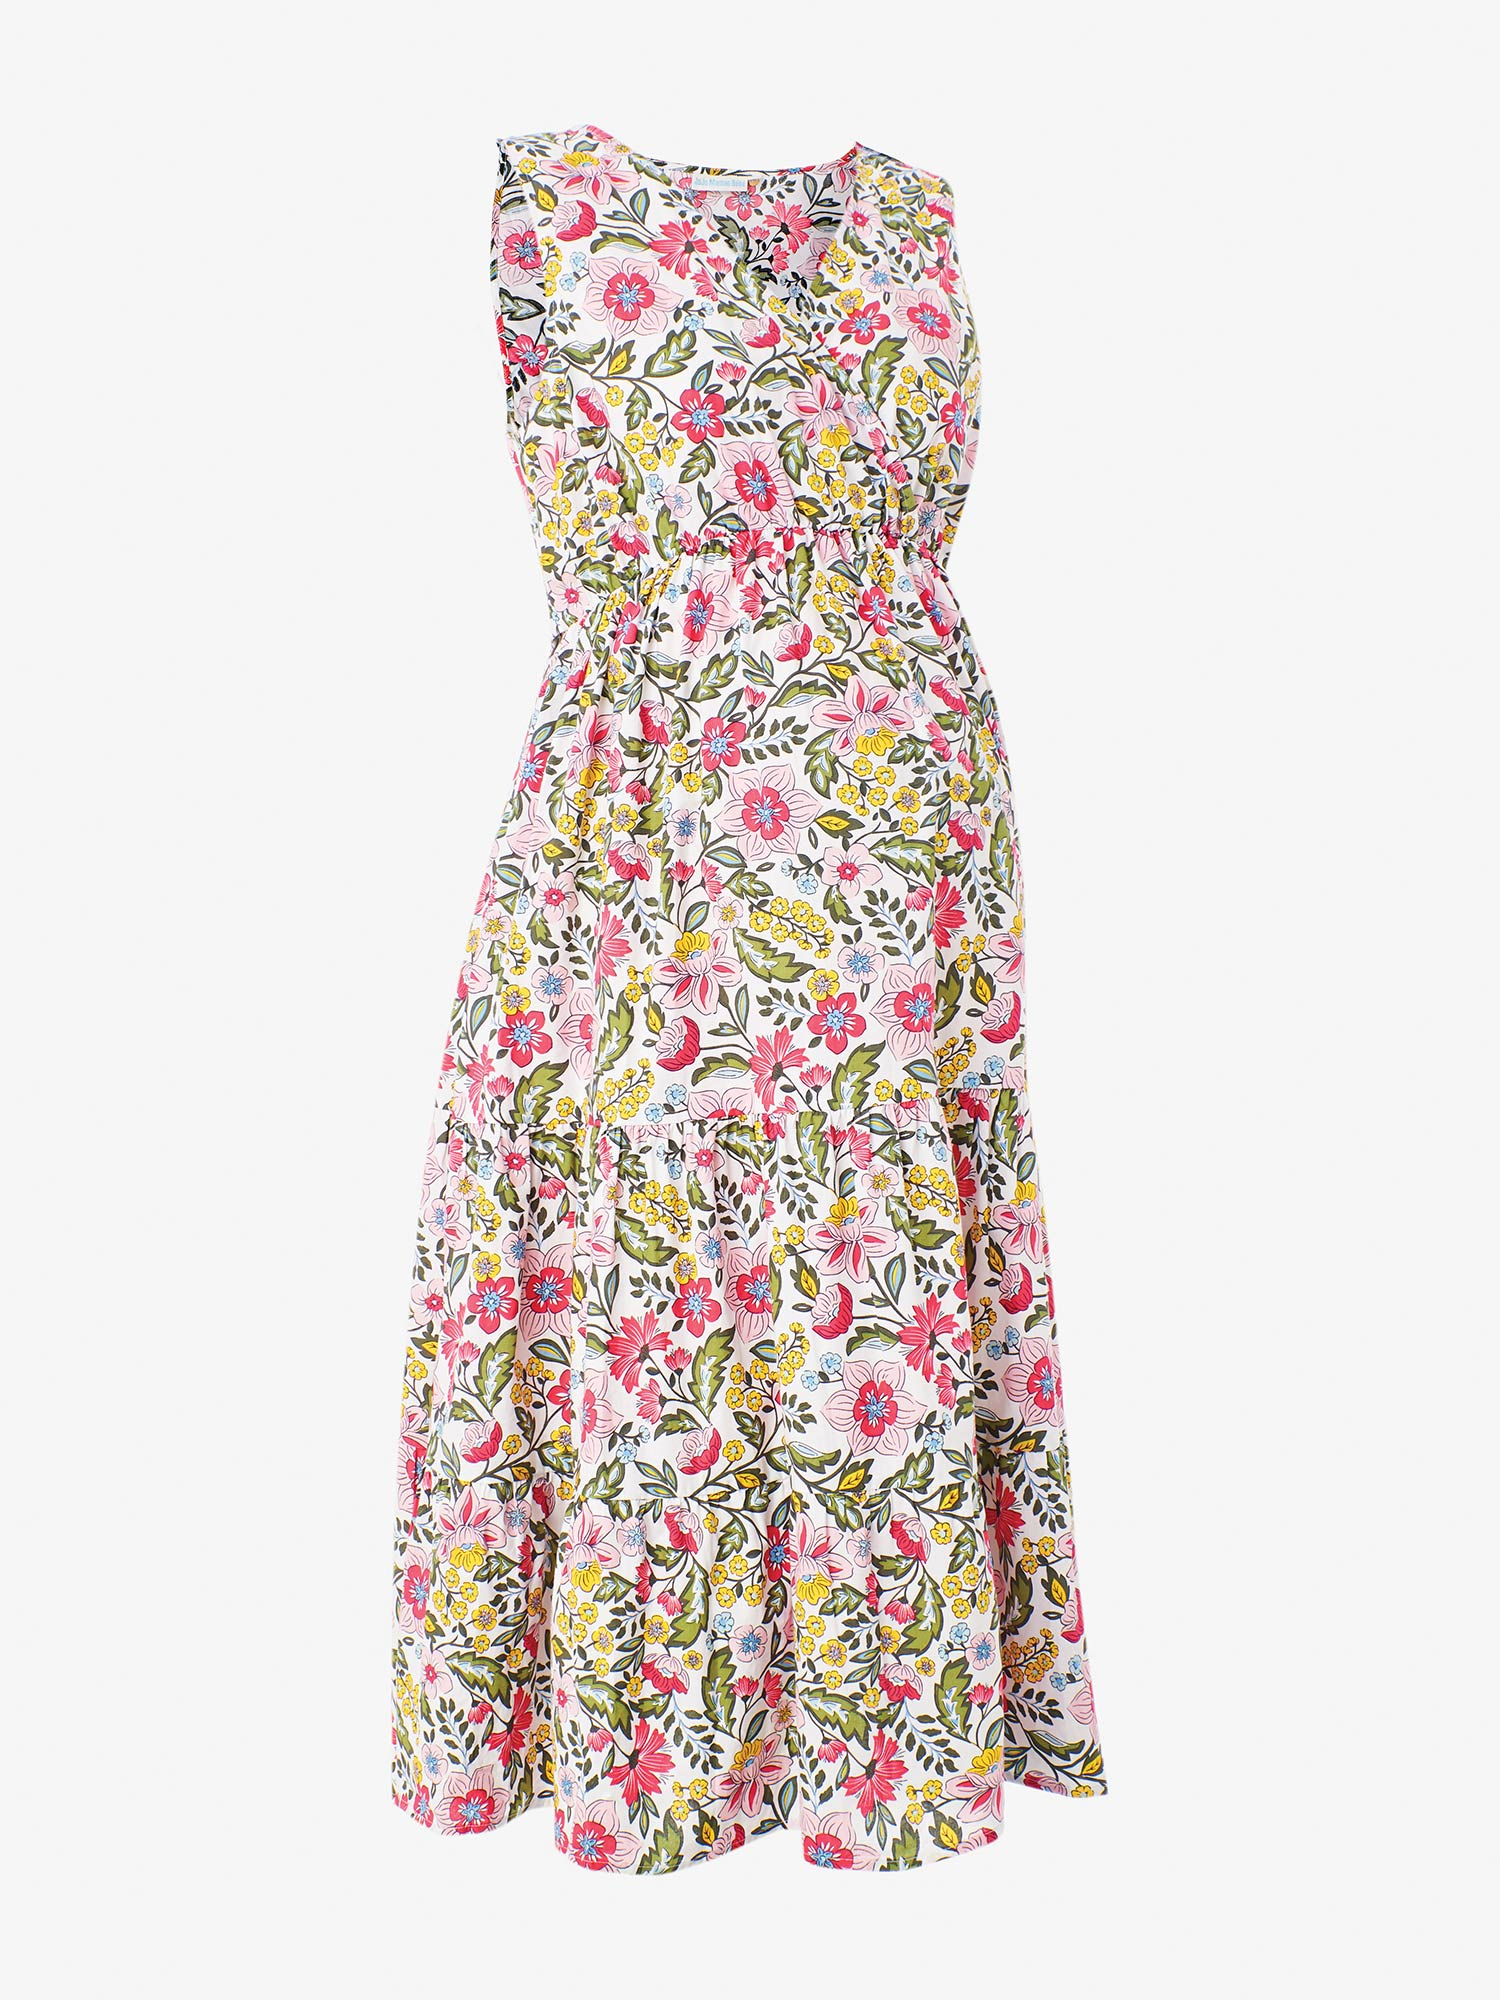 Pink Floral Tiered Maternity Dress